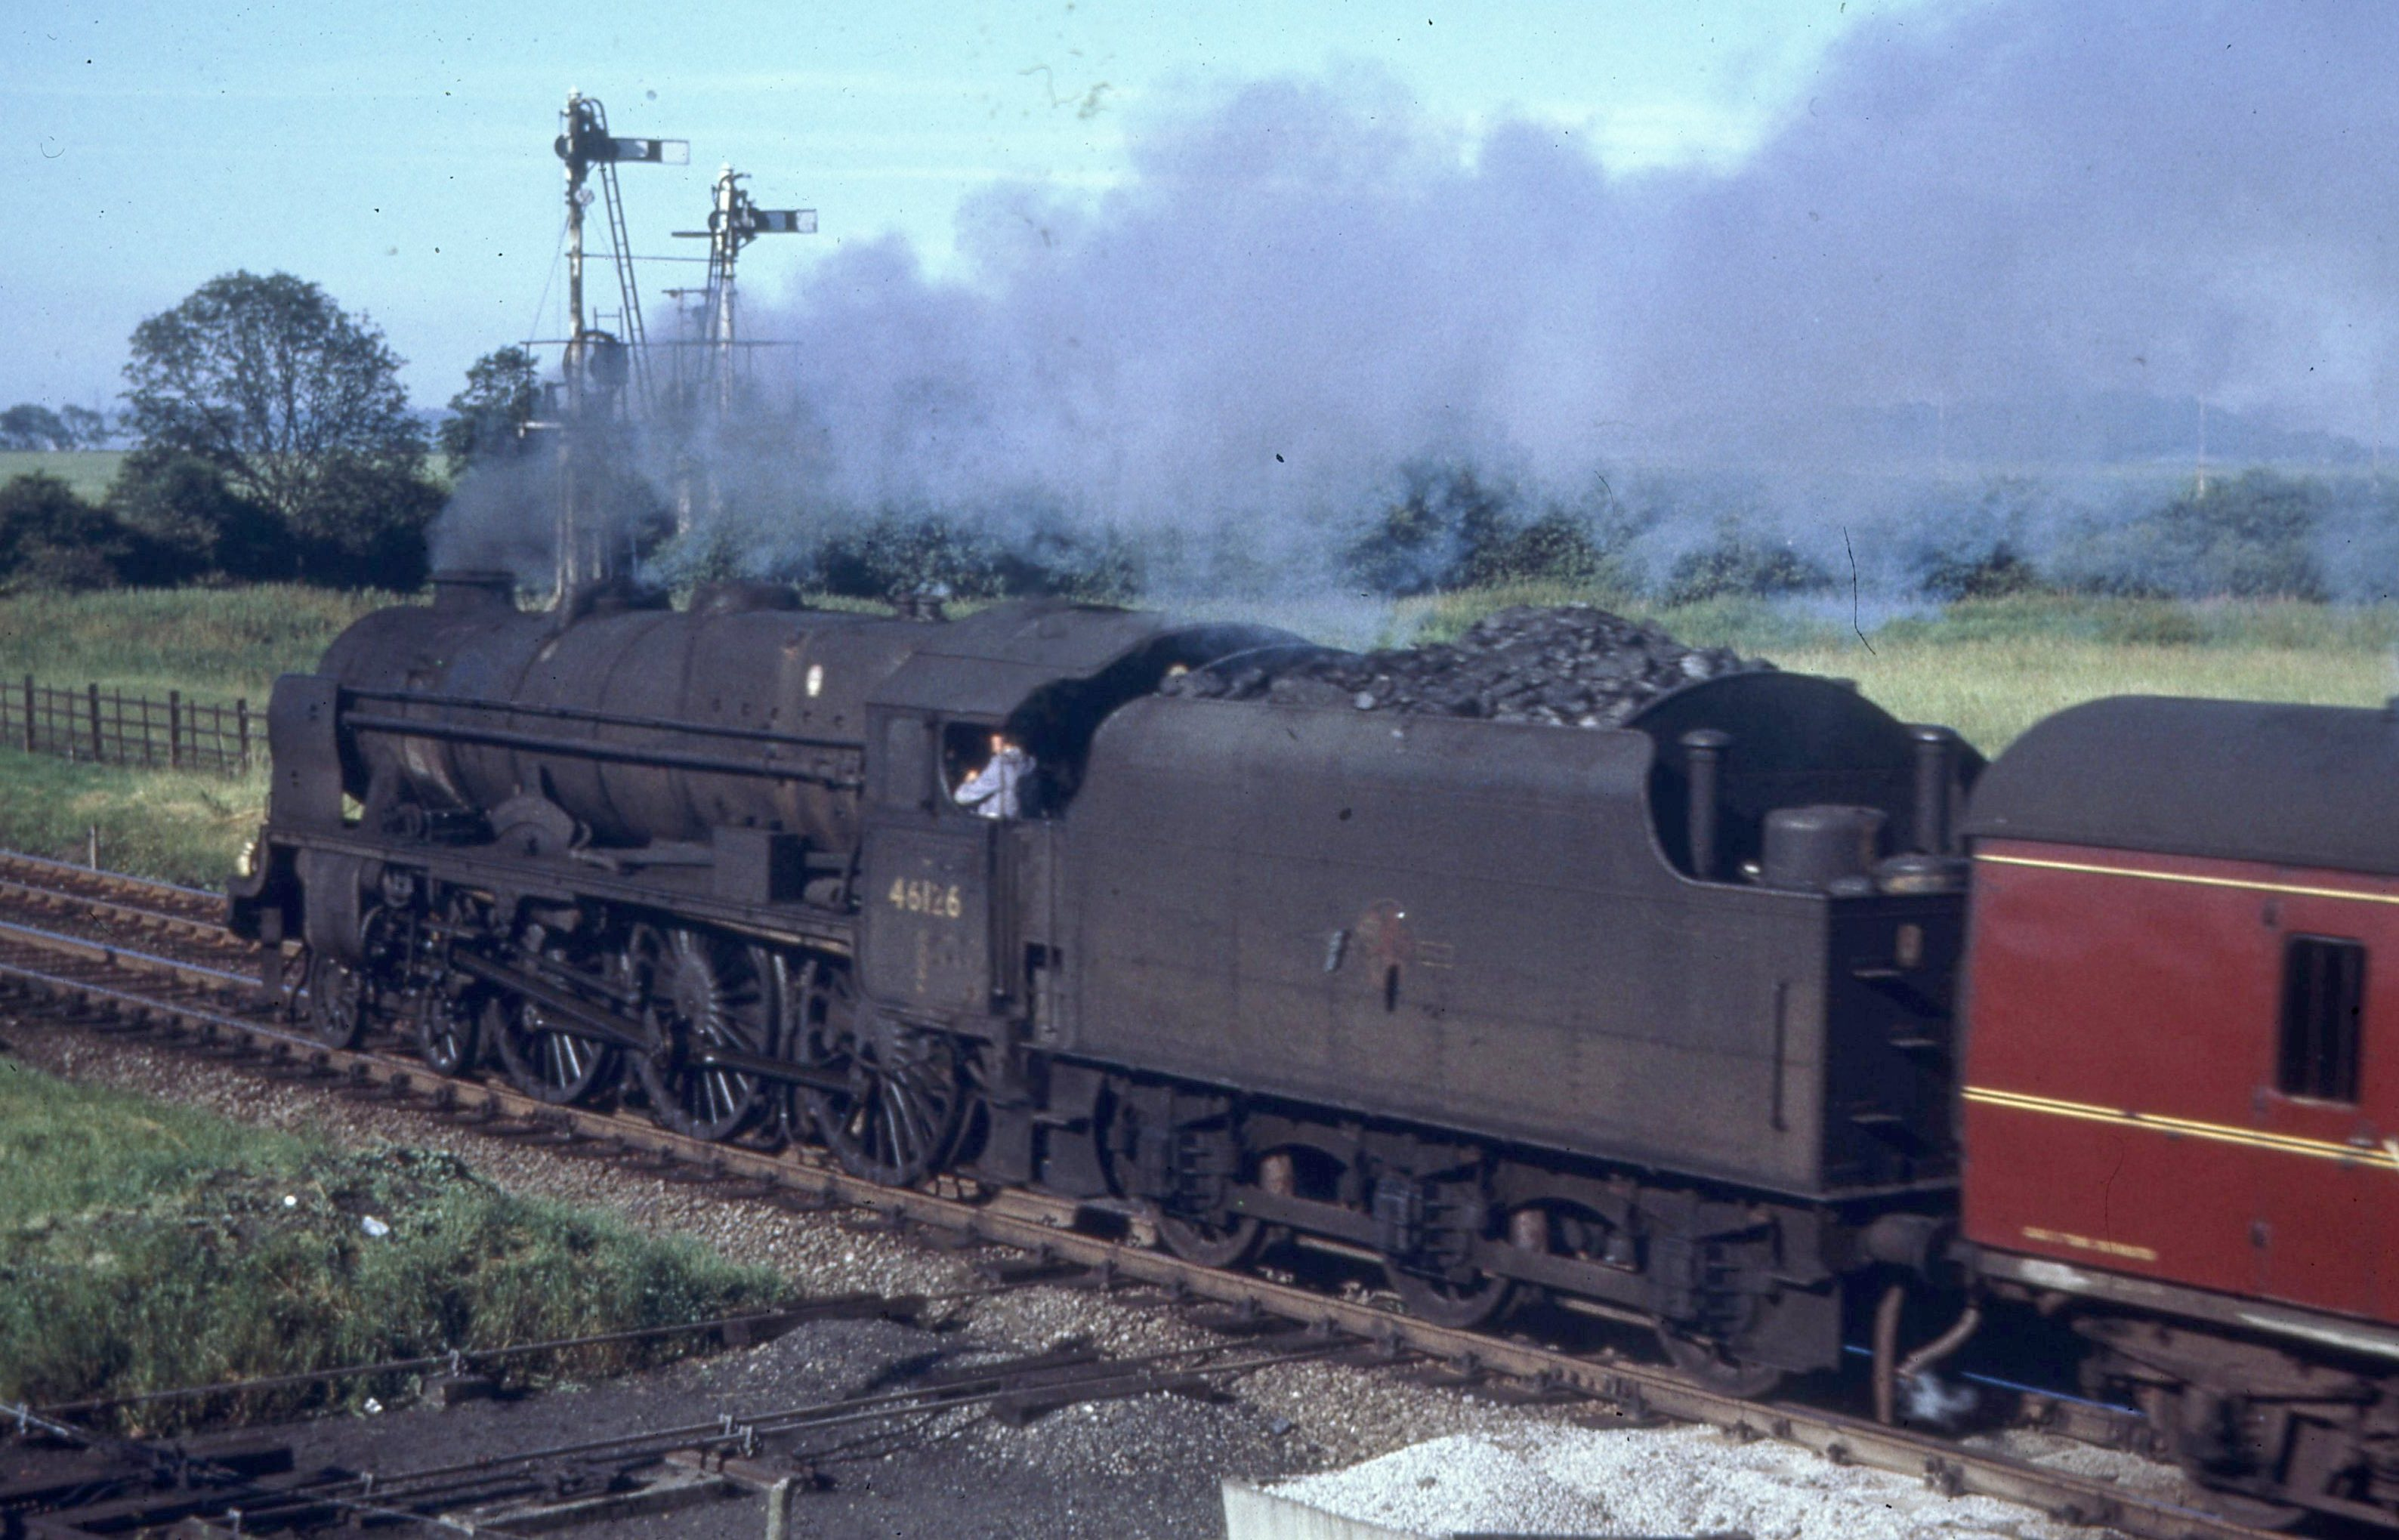 46126_ruddington_1963.jpg